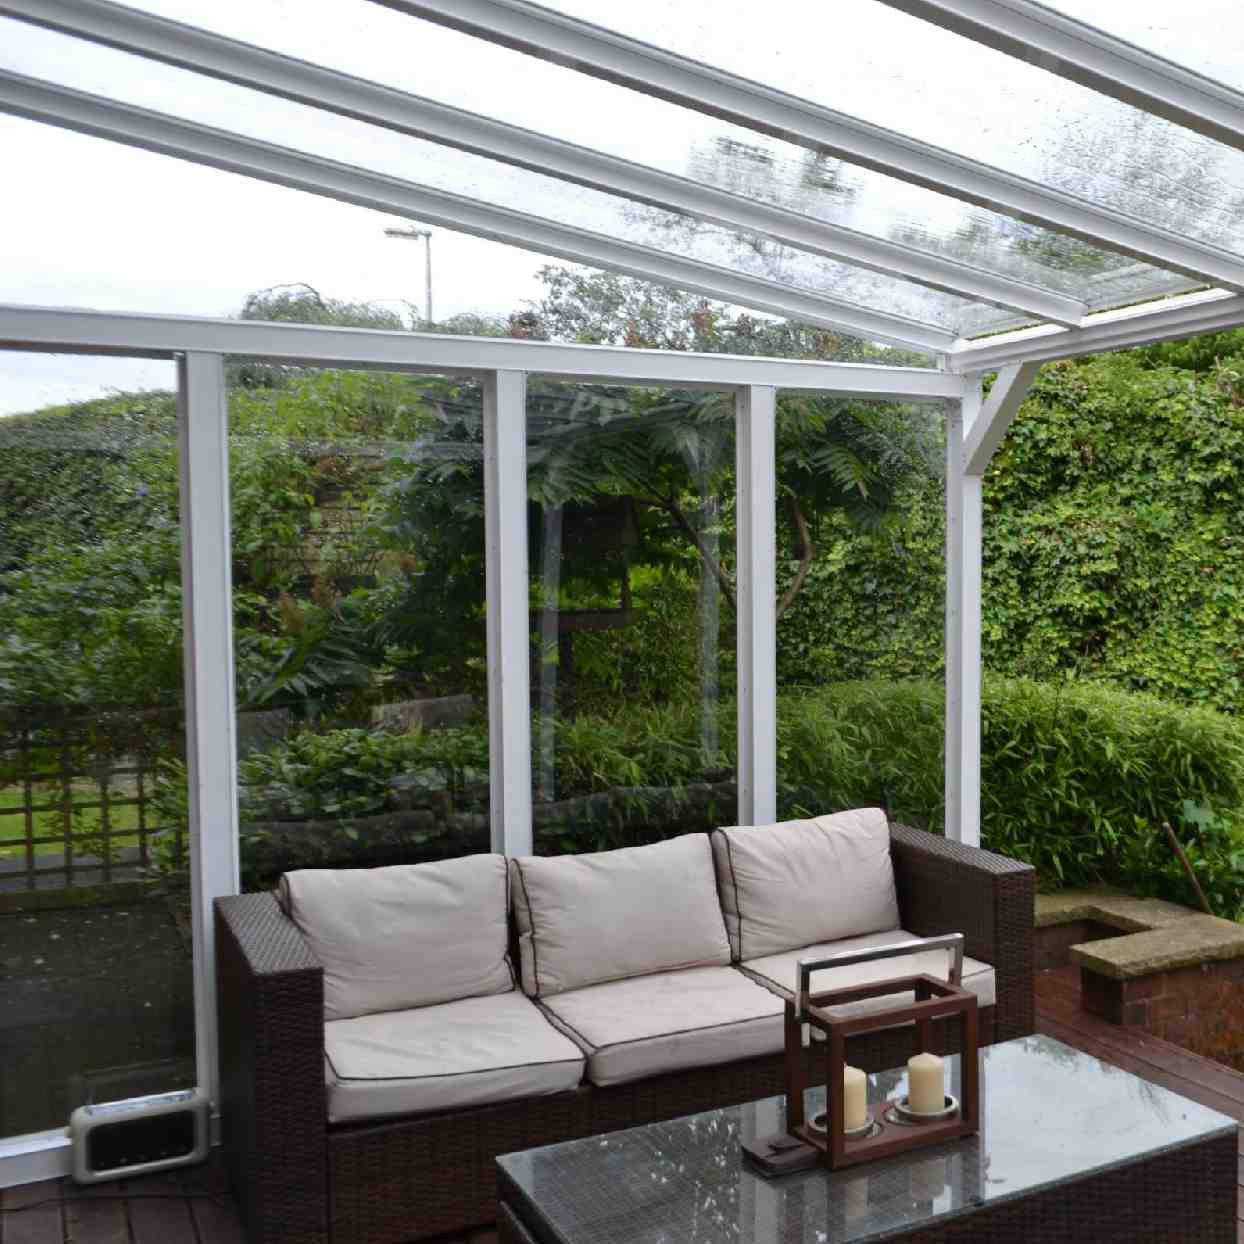 Buy Omega Verandah with 16mm Polycarbonate Glazing - 2.1m (W) x 4.0m (P), (2) Supporting Posts online today